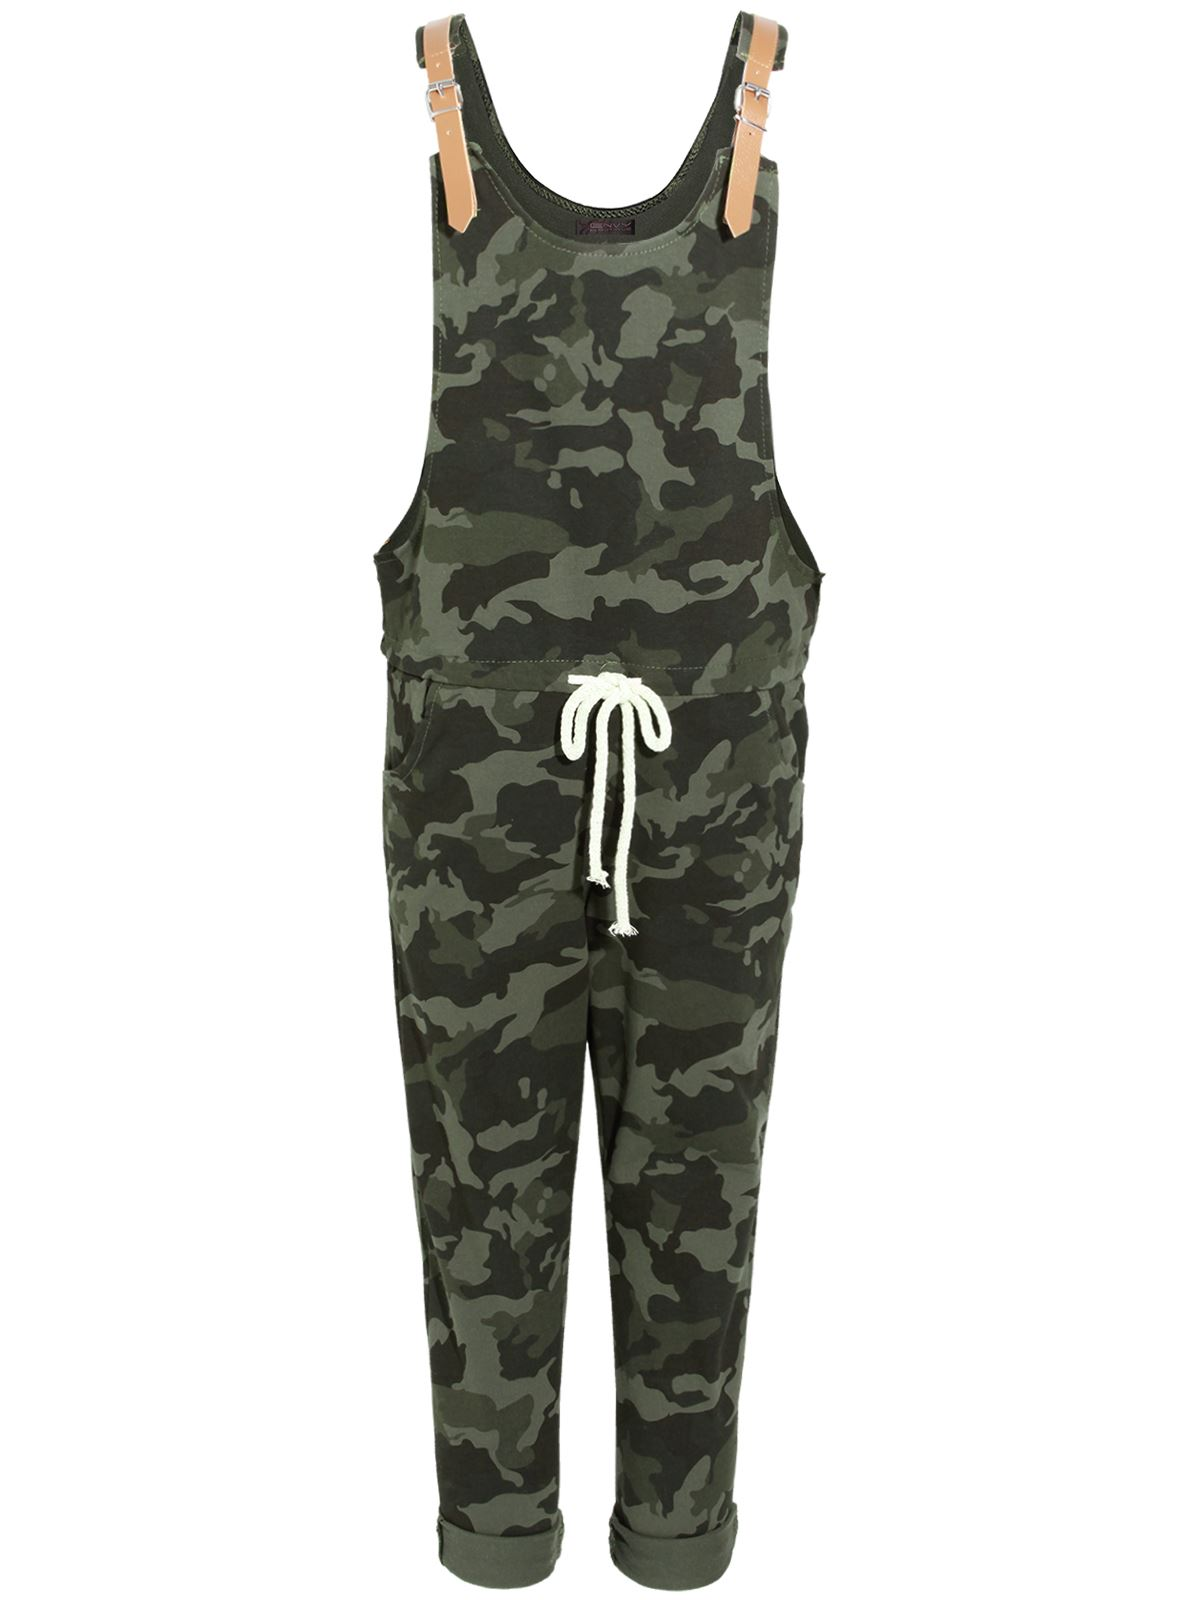 ladies womens dungaree camo camouflage jumpsuit 3 4 pants loungewear ebay. Black Bedroom Furniture Sets. Home Design Ideas